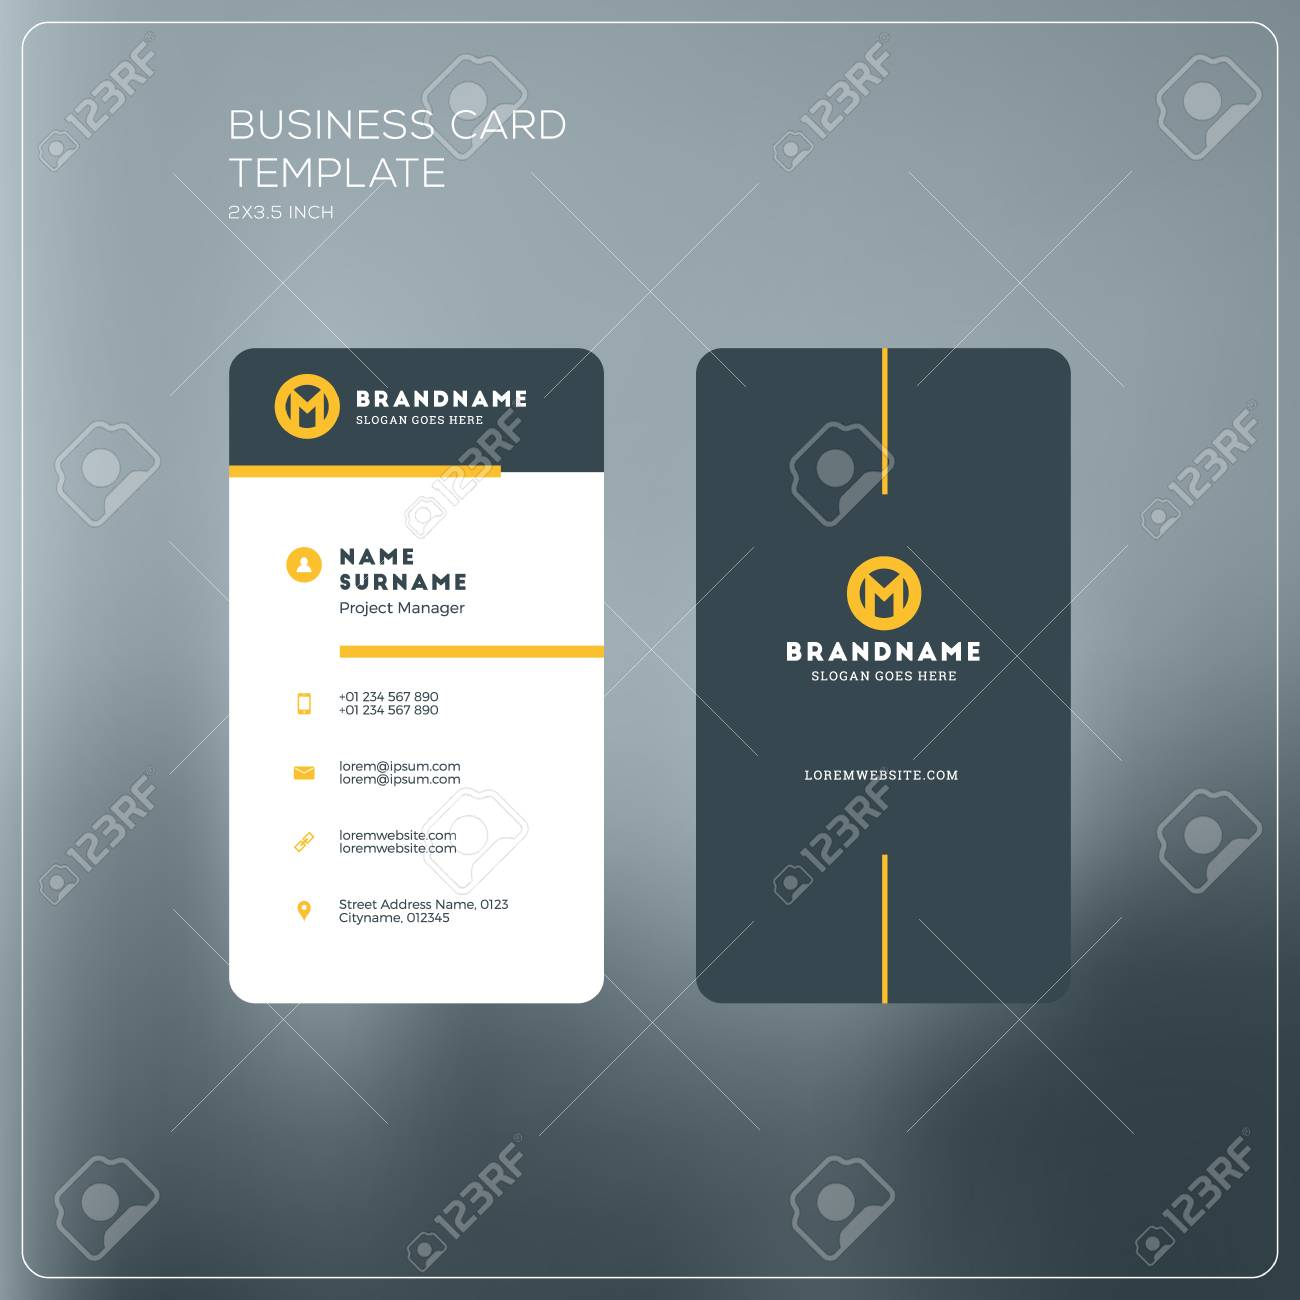 Vertical business card print template personal business card vector vertical business card print template personal business card with company logo black and yellow colors clean flat design vector illustration flashek Images